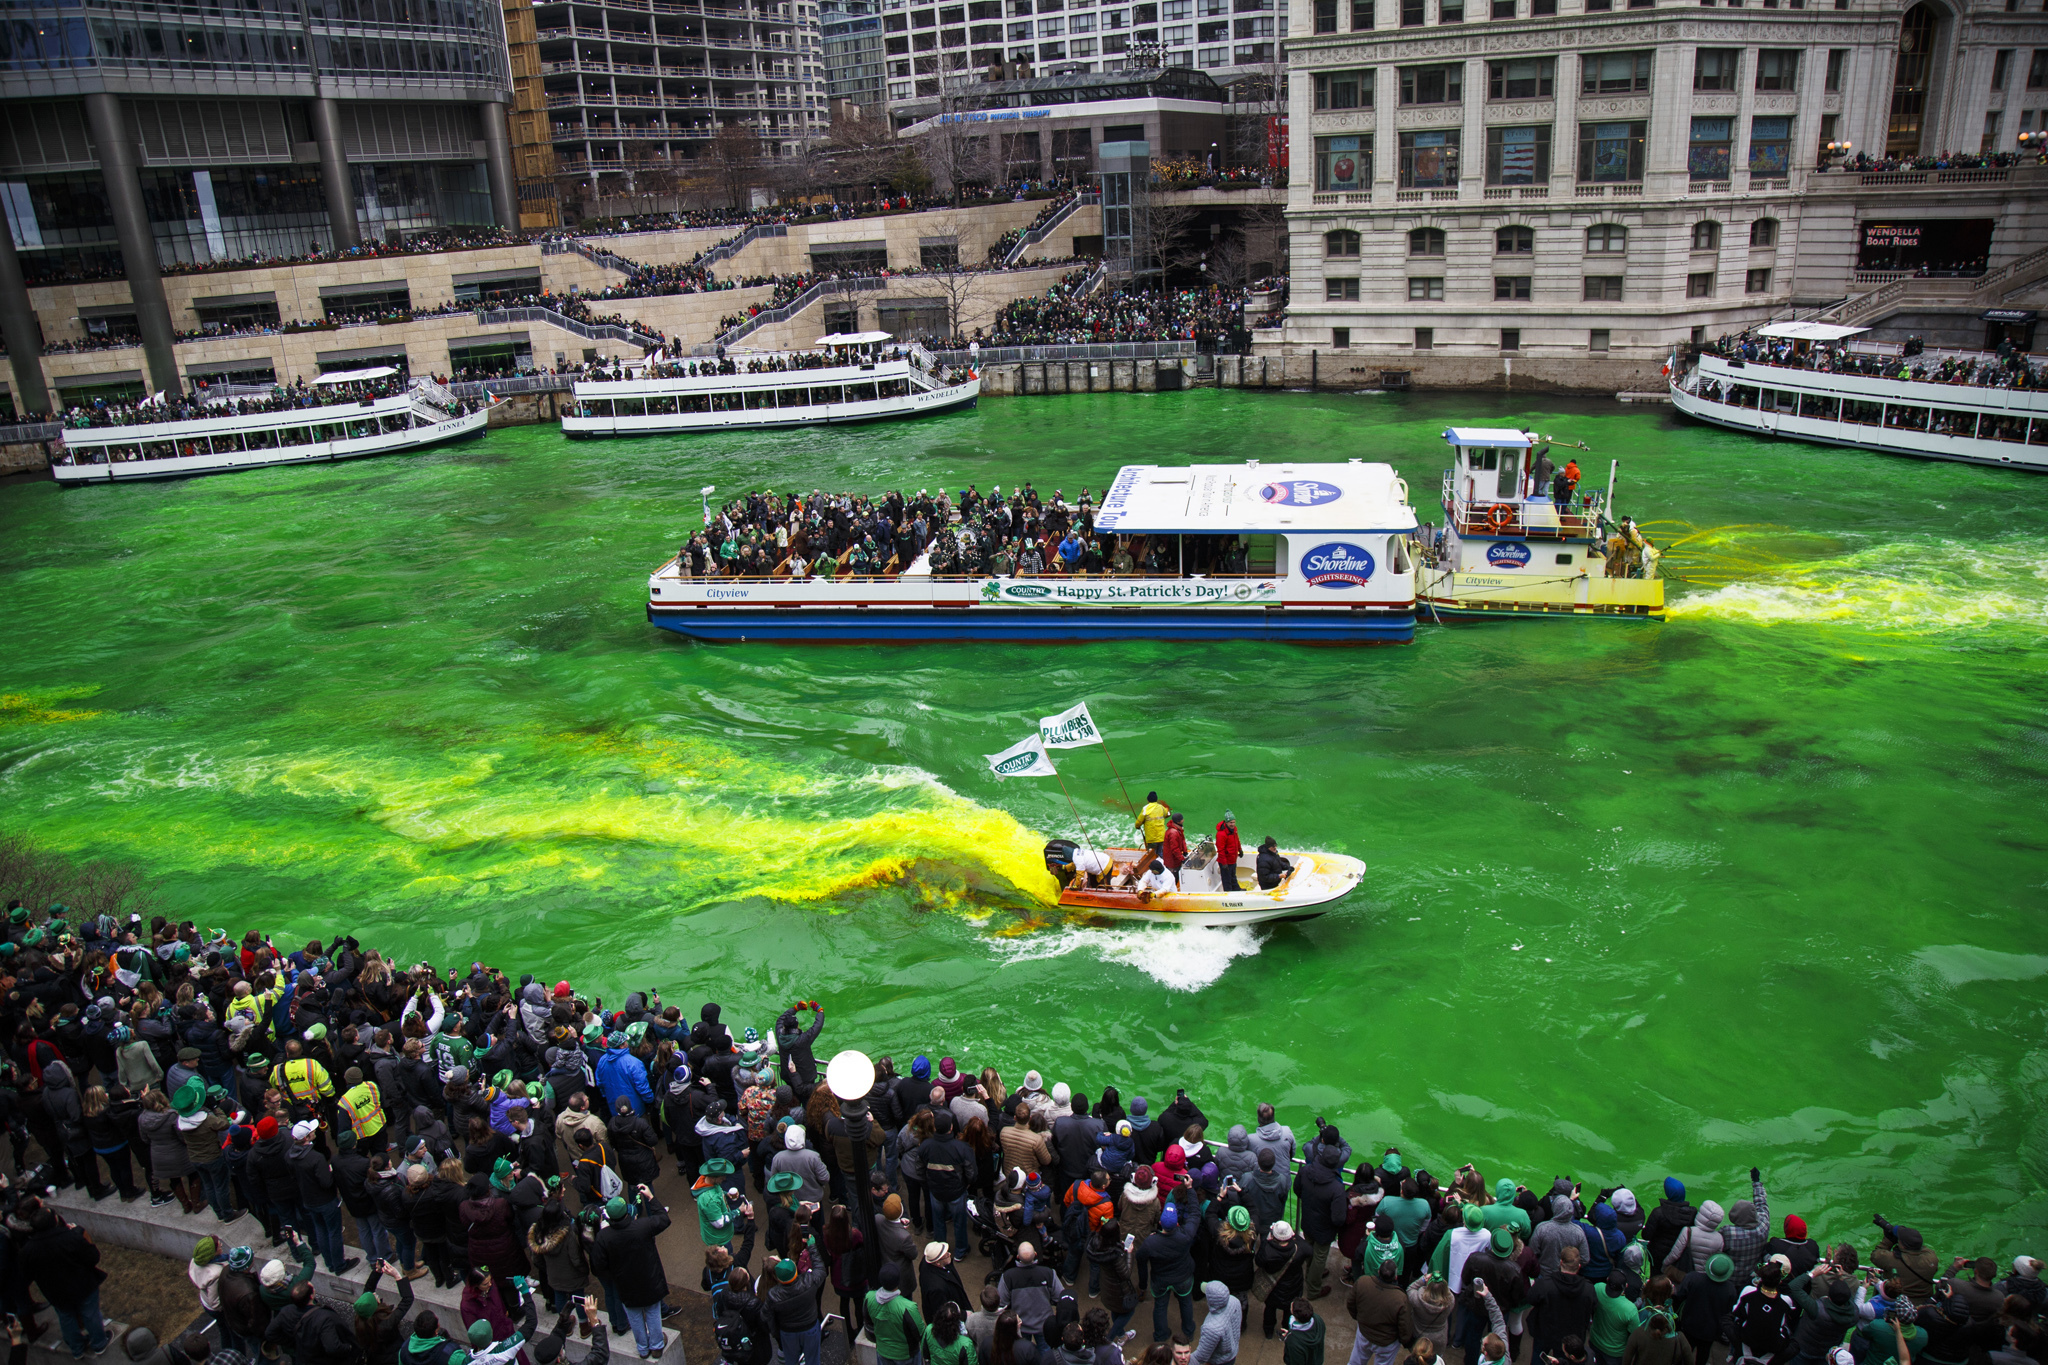 Chicago's St. Patrick's Day parades aren't happening this year